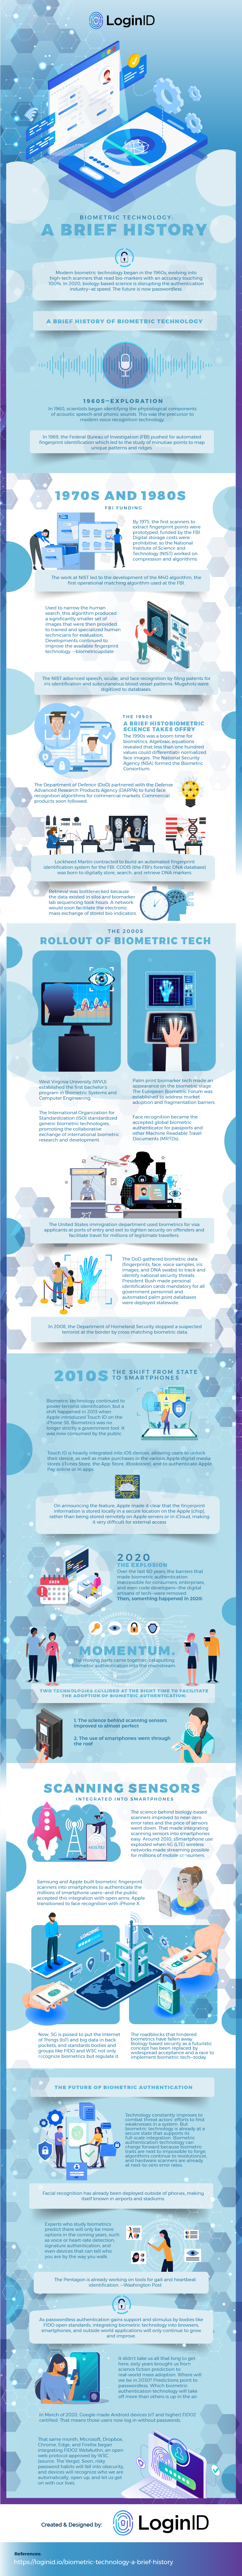 Biometric Technology a brief history infographic image784UNA